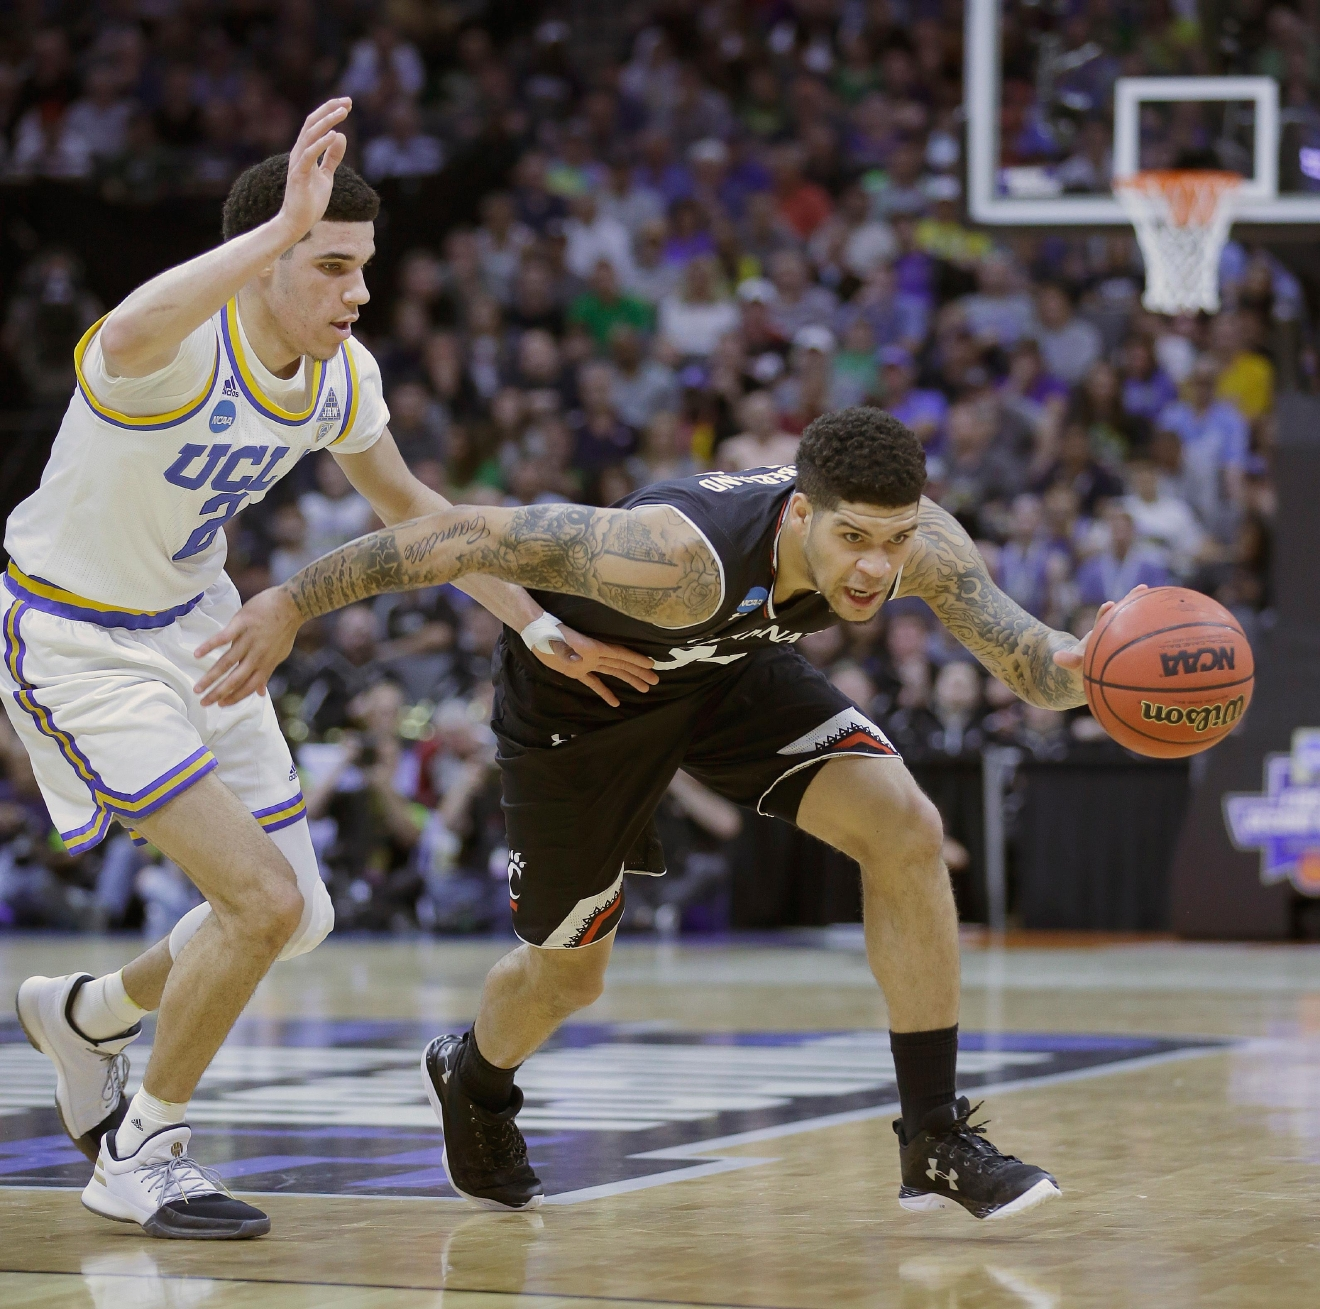 Cincinnati guard Jarron Cumberland, right, drives against UCLA Lonzo Ball during the first half of a second-round game of the NCAA men's college basketball tournament in Sacramento, Calif., Sunday, March 19, 2017. (AP Photo/Rich Pedroncelli)